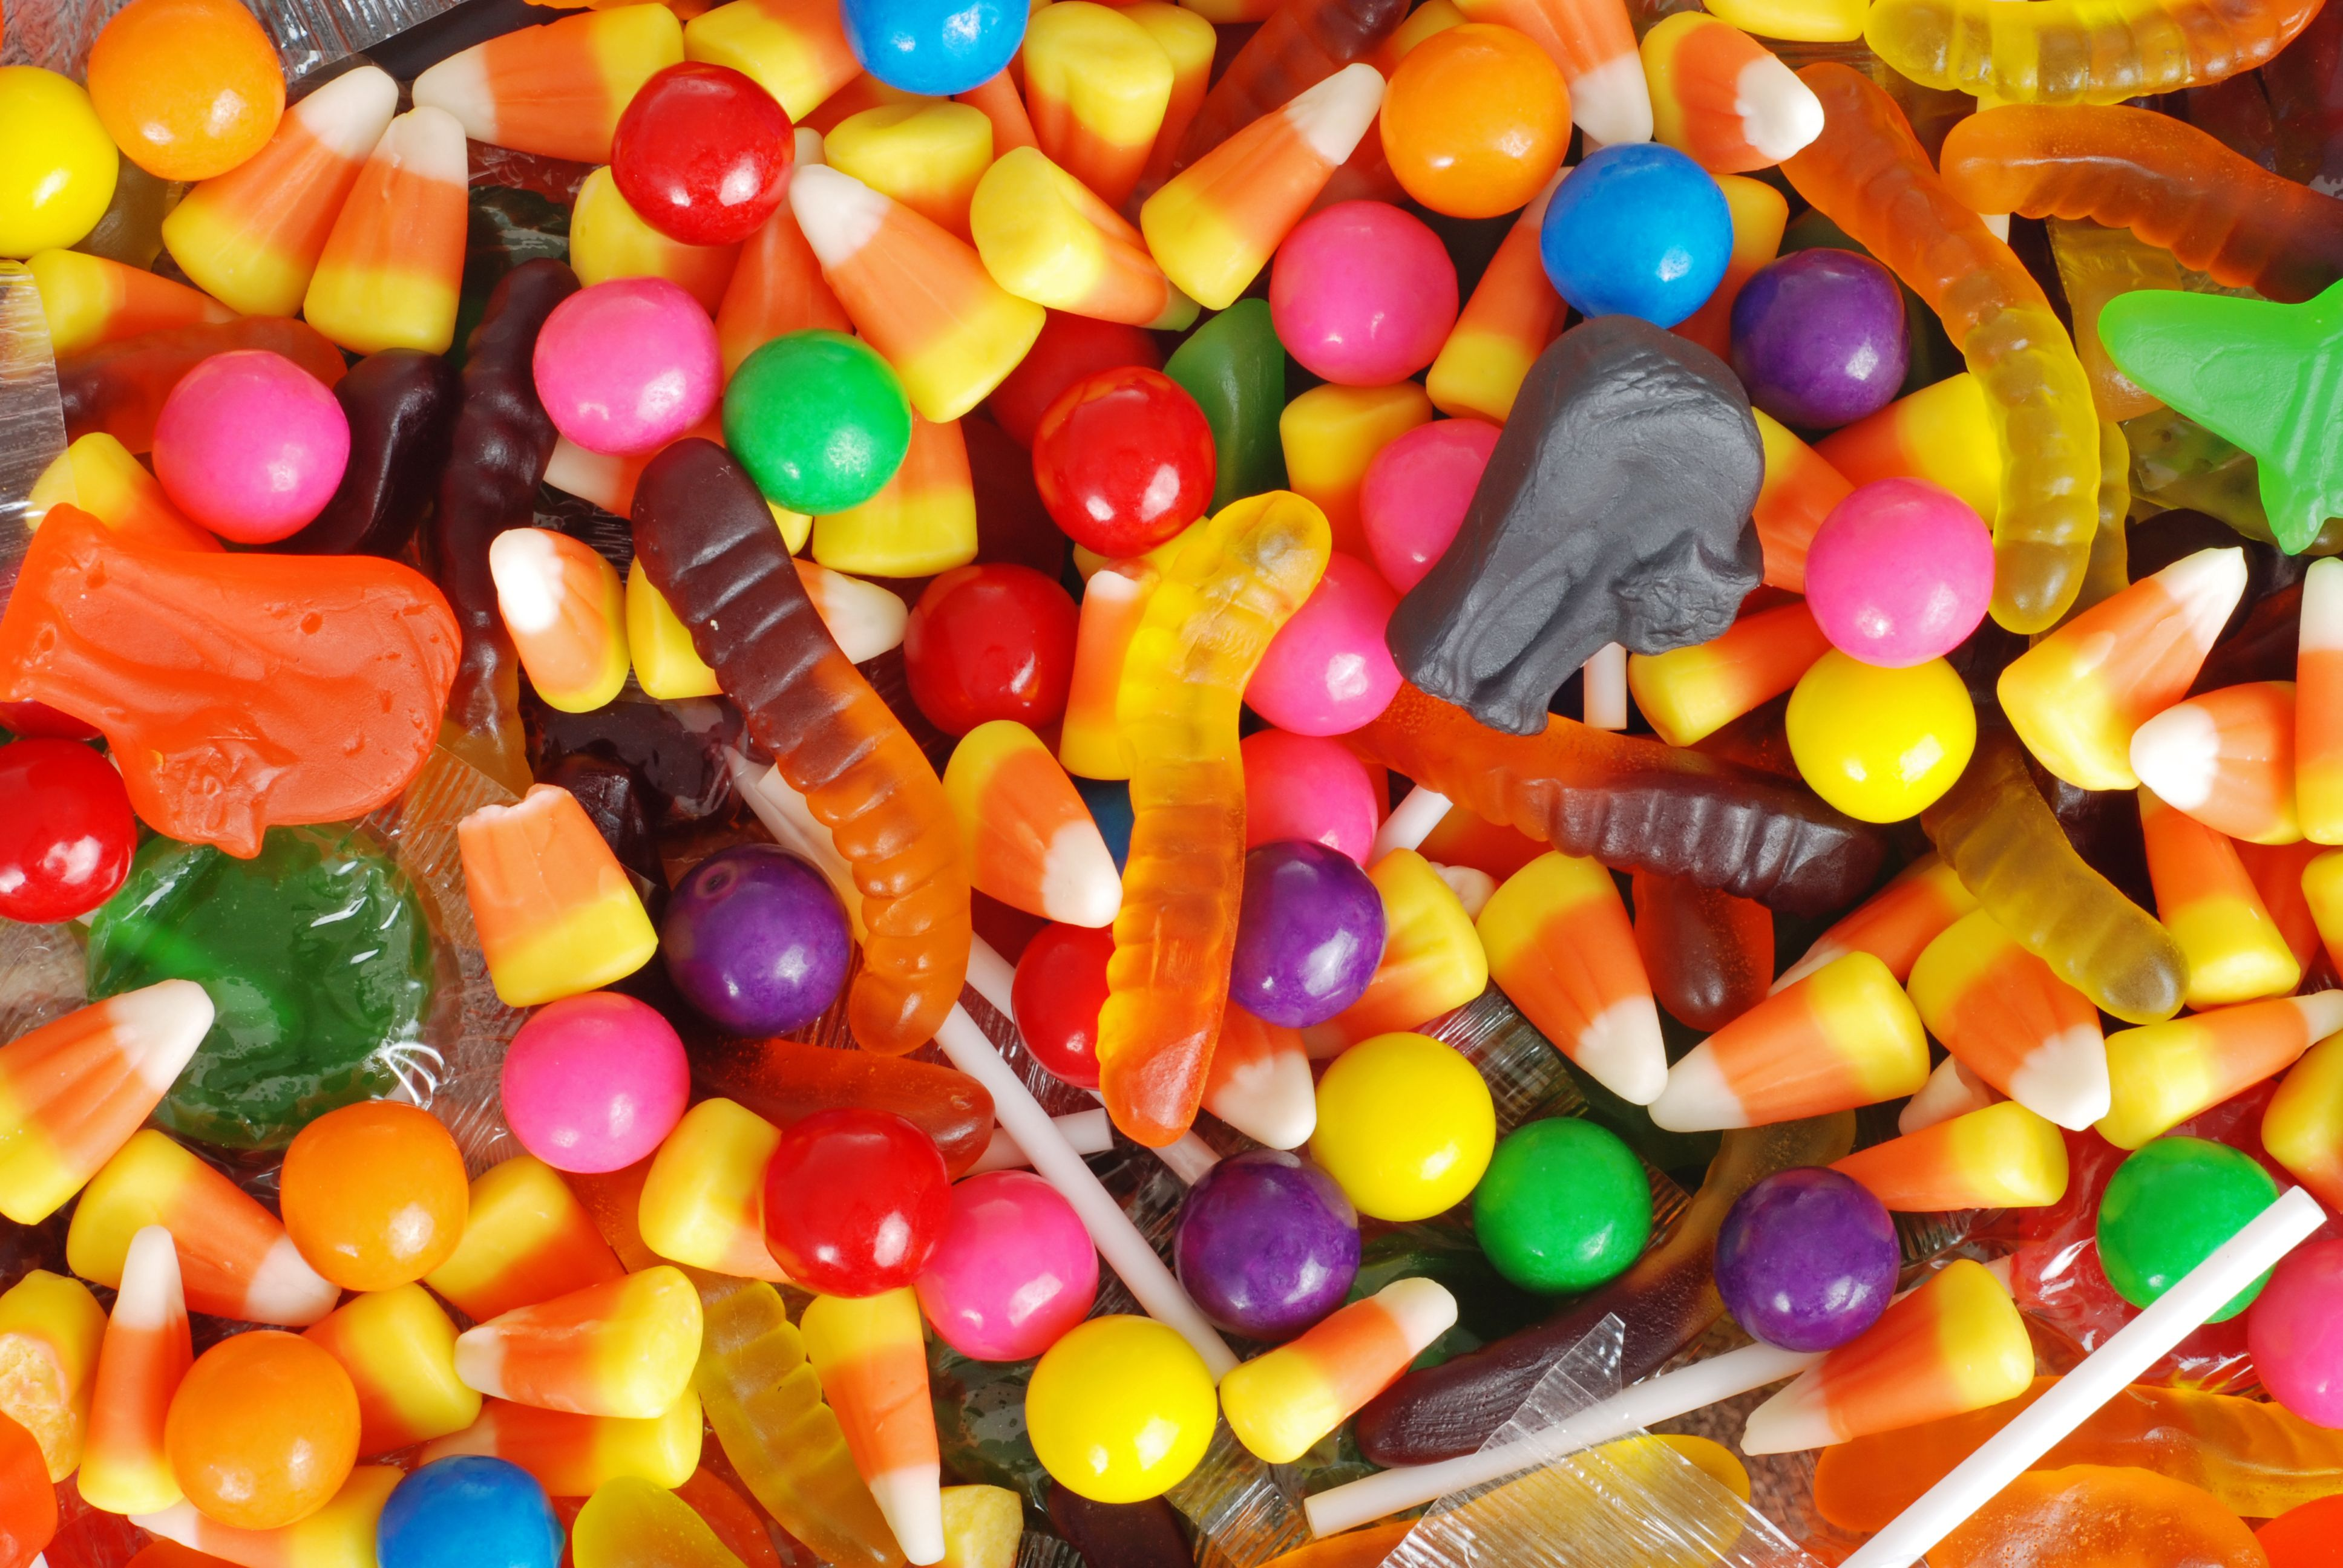 The Best Halloween Candy When You Want to Make Healthier Choices